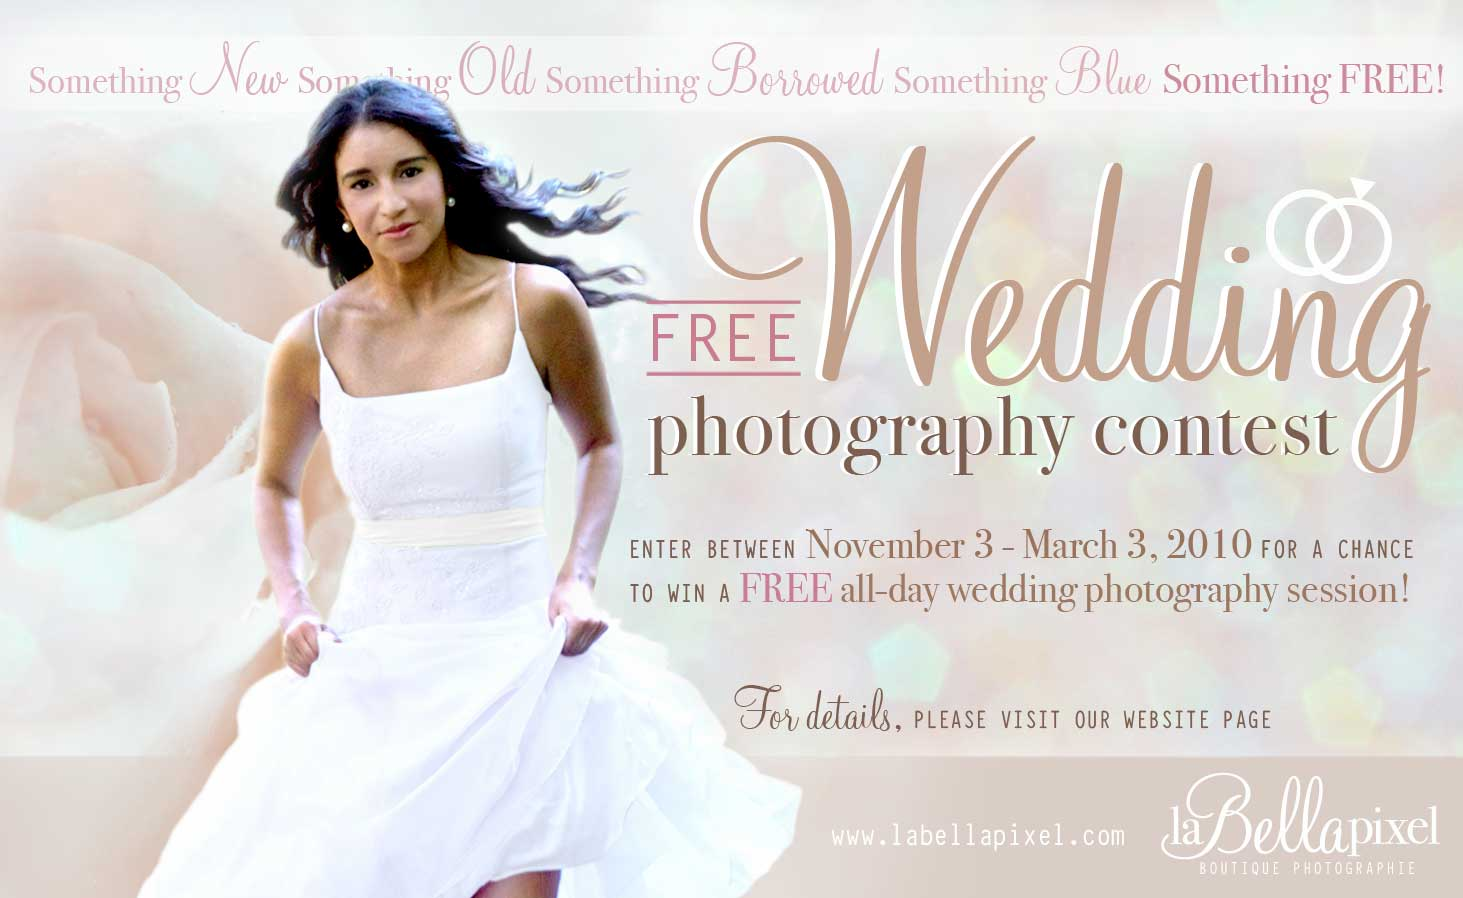 Enter Between November 3 March 2010 For Achance To Win A Free All Day Wedding Photography